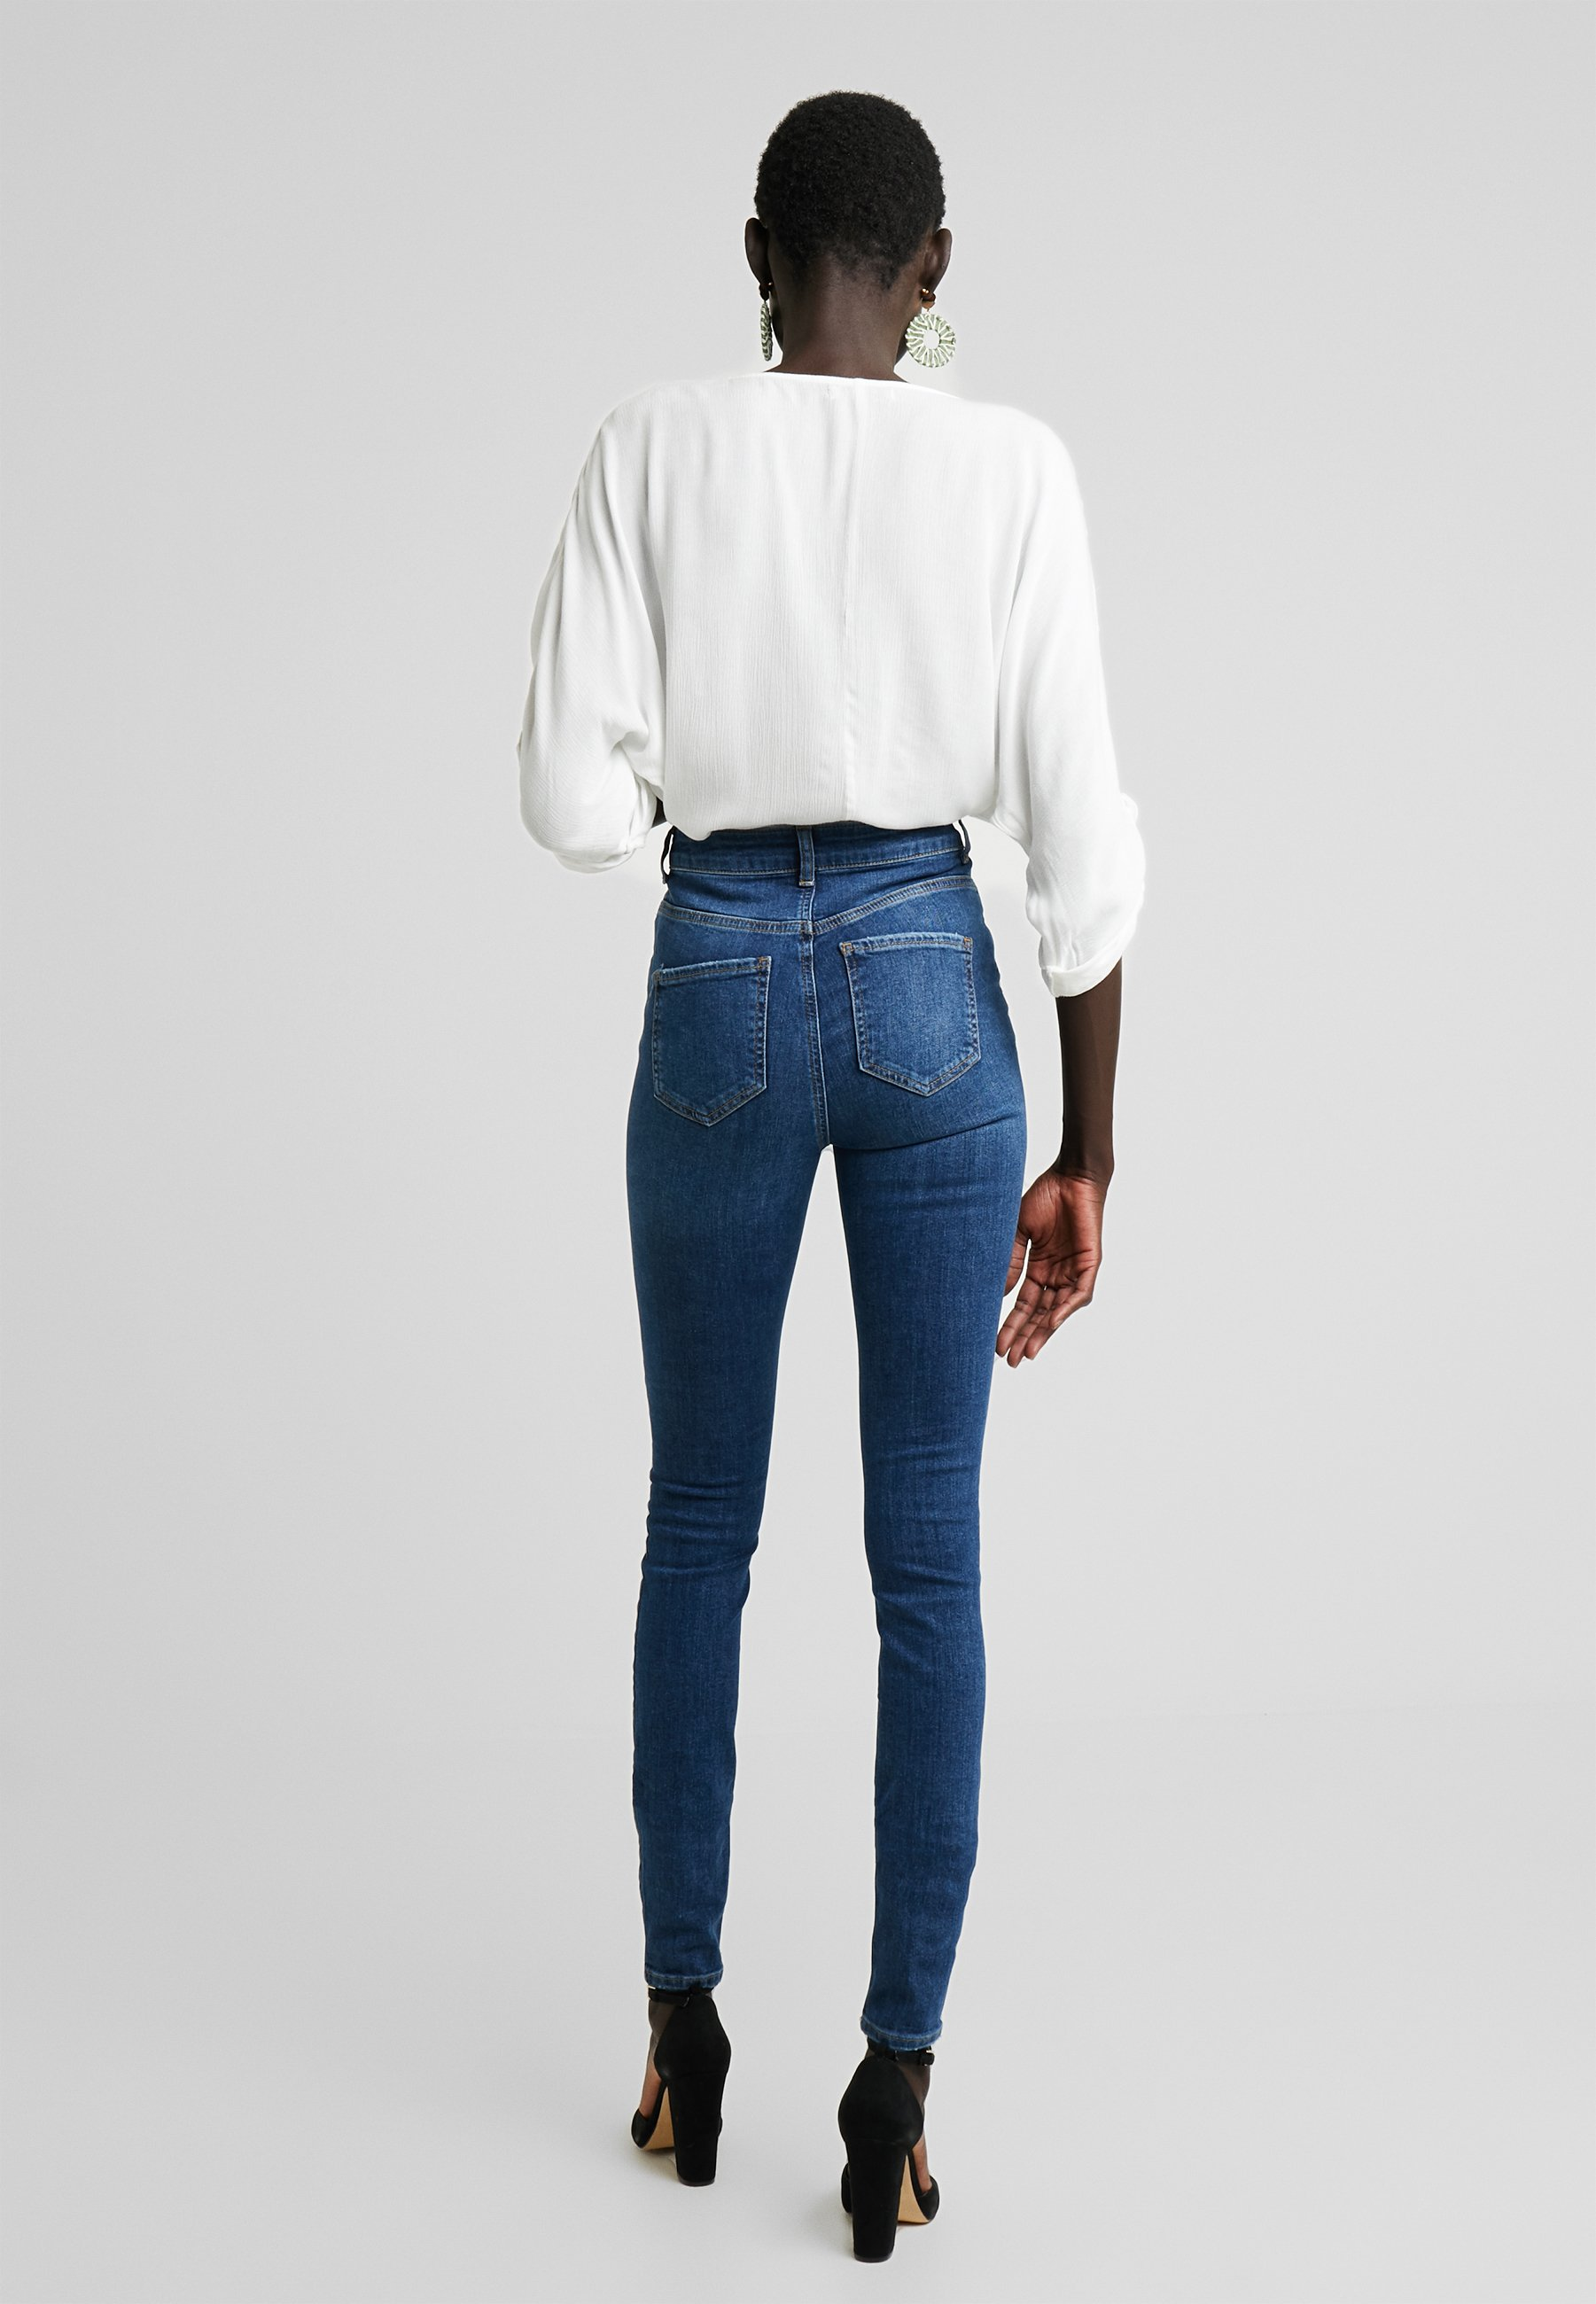 Denim Tall Skinny Blue May NmcallieJeans Noisy sdthQCr